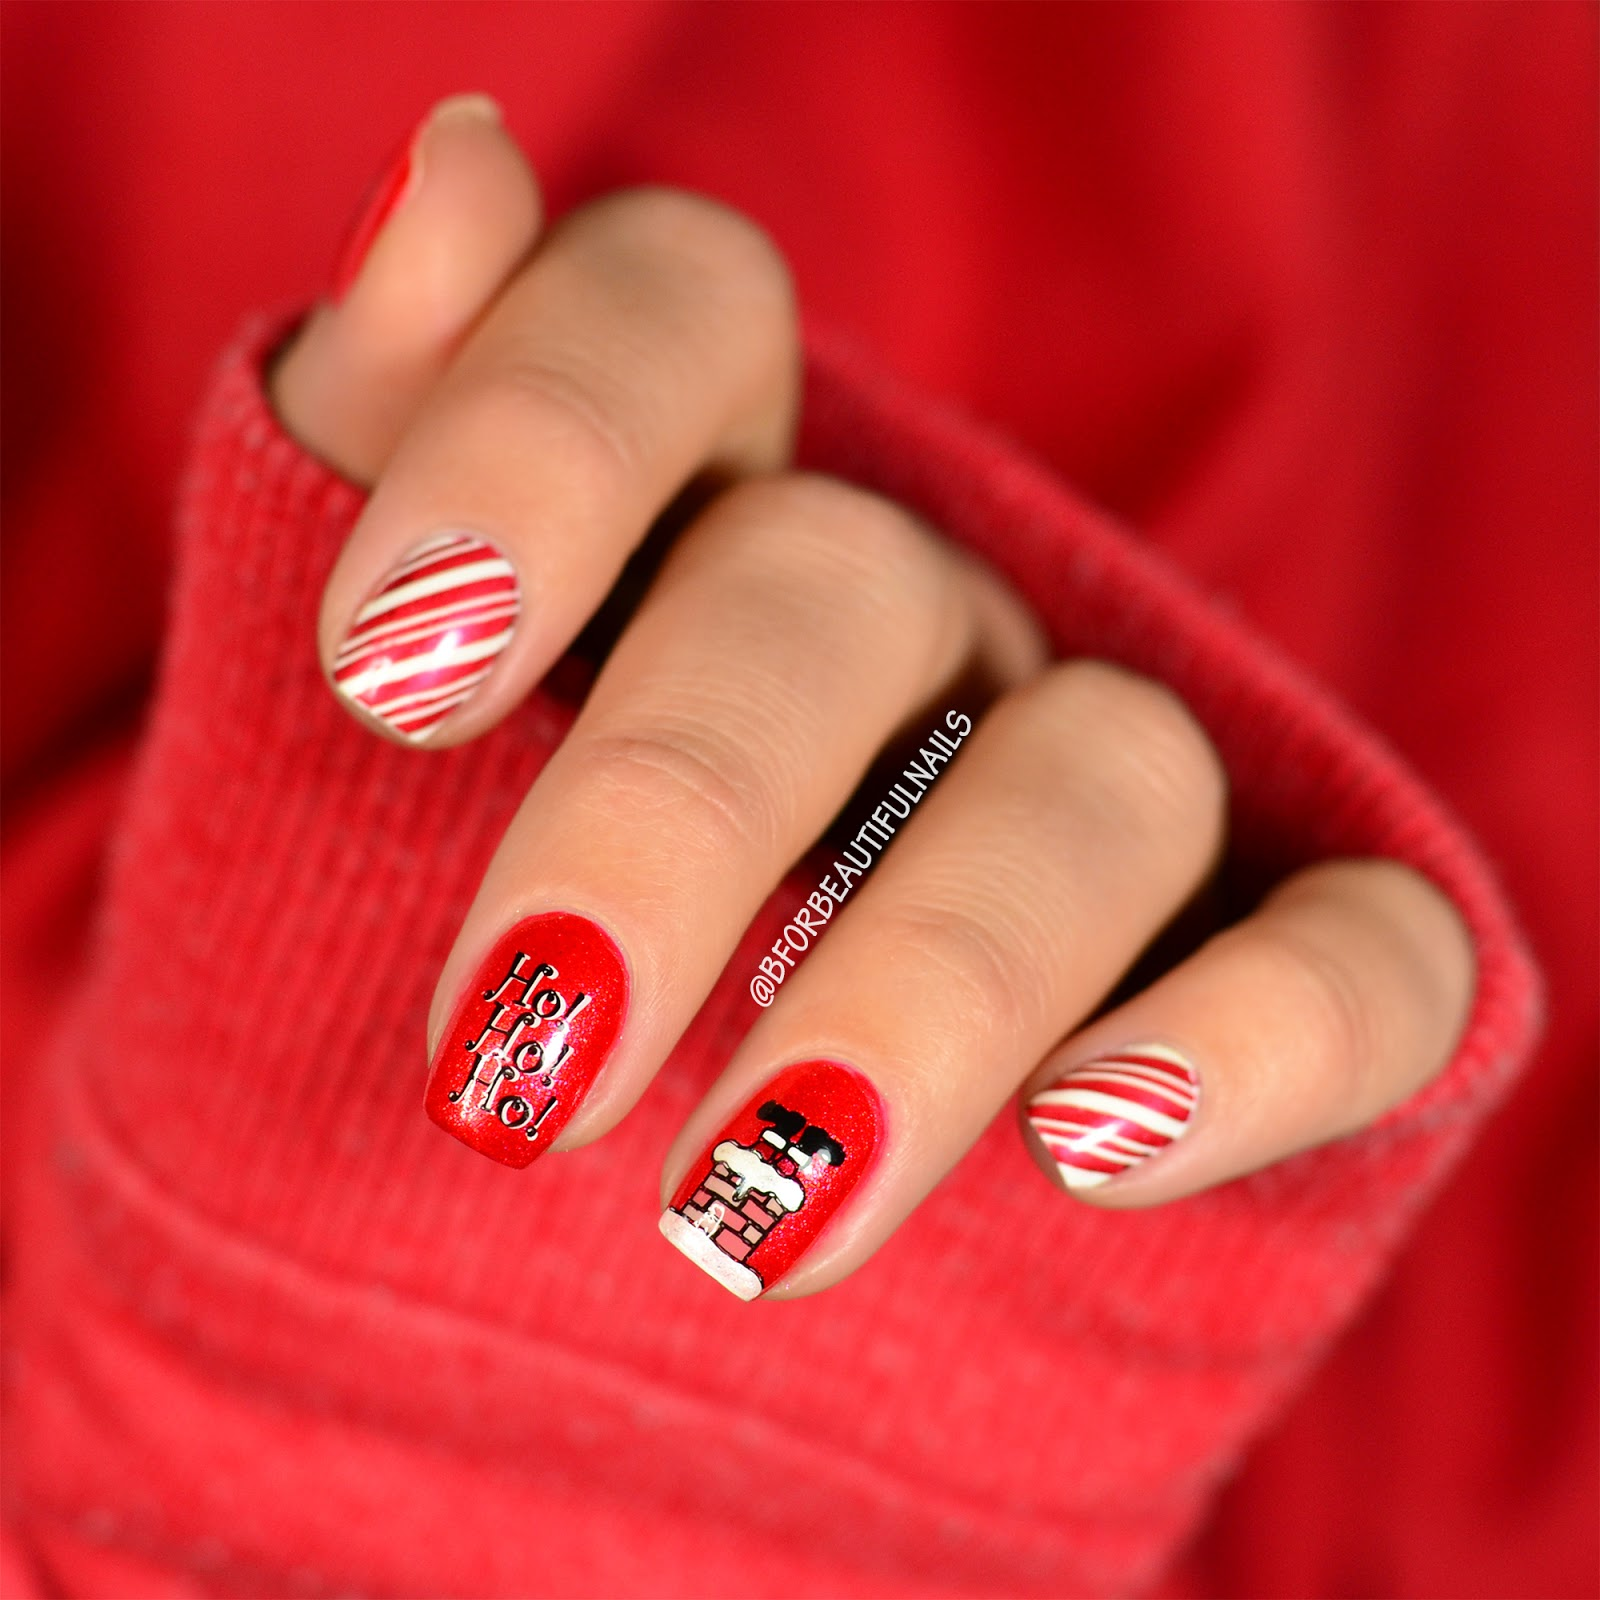 Neonail Forever Calm Autumn Leaves B For Beautiful Nails